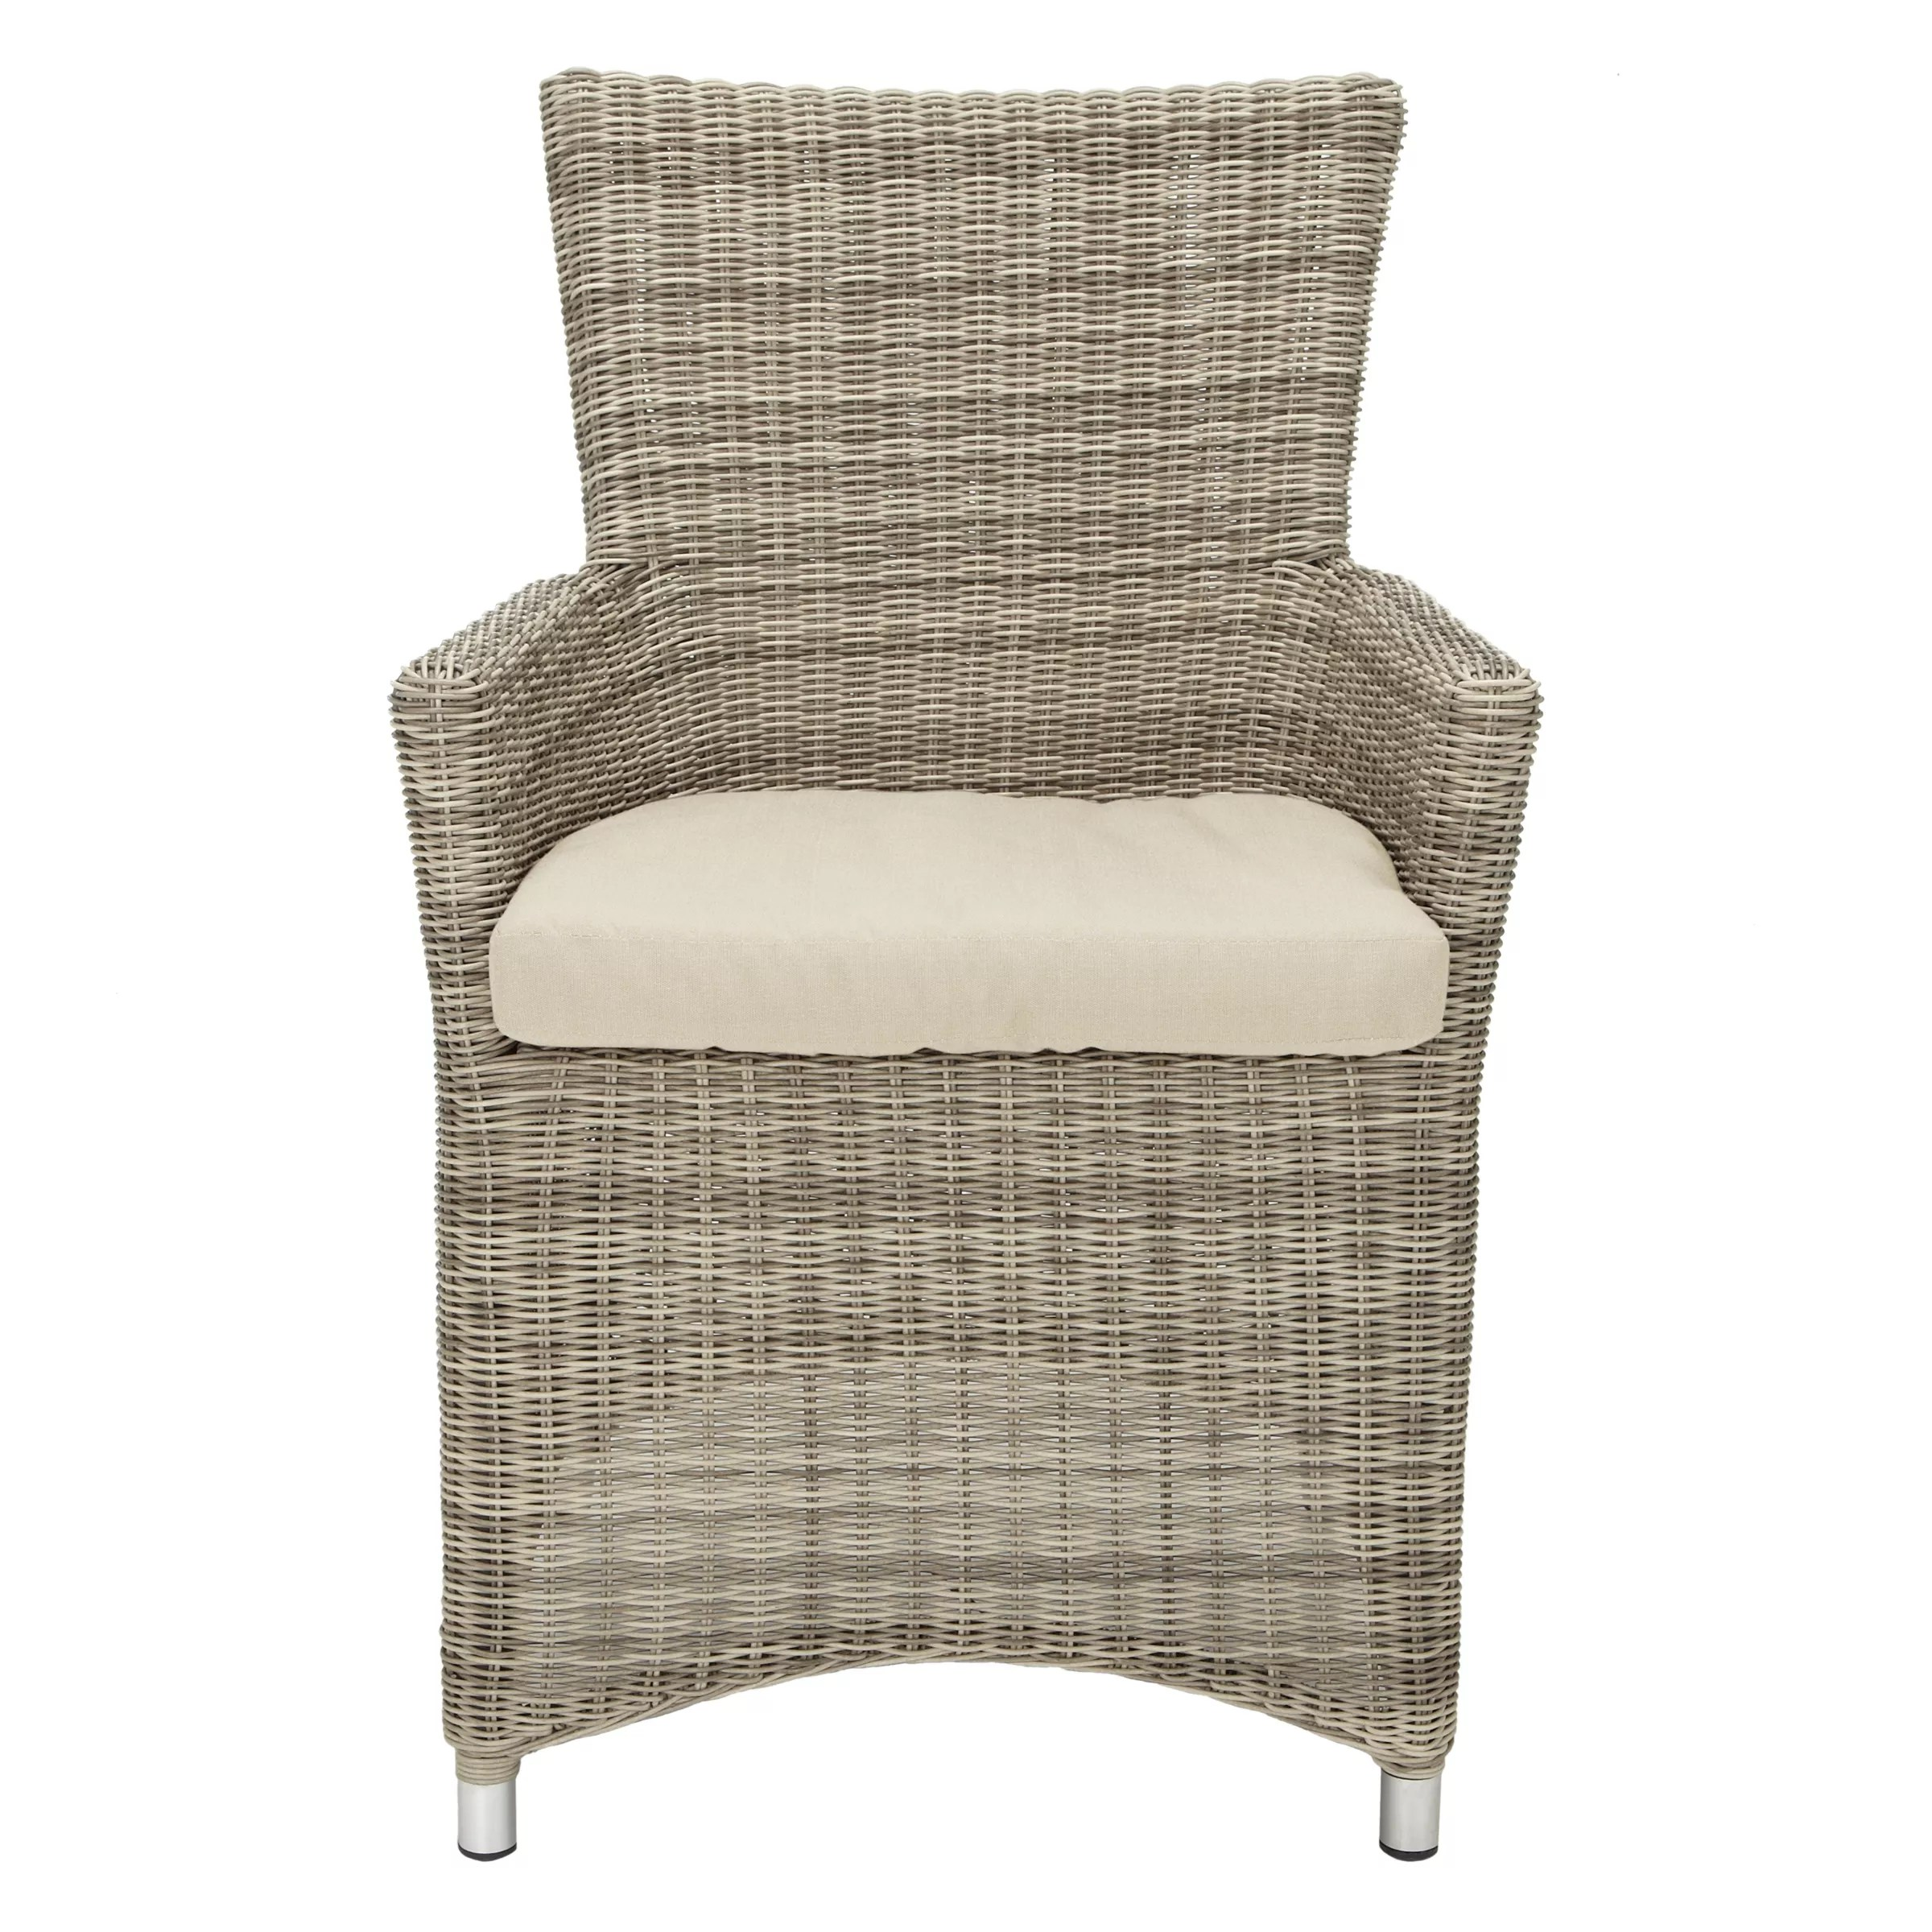 john lewis armchair covers wingback recliner chairs living room dante outdoor dining at